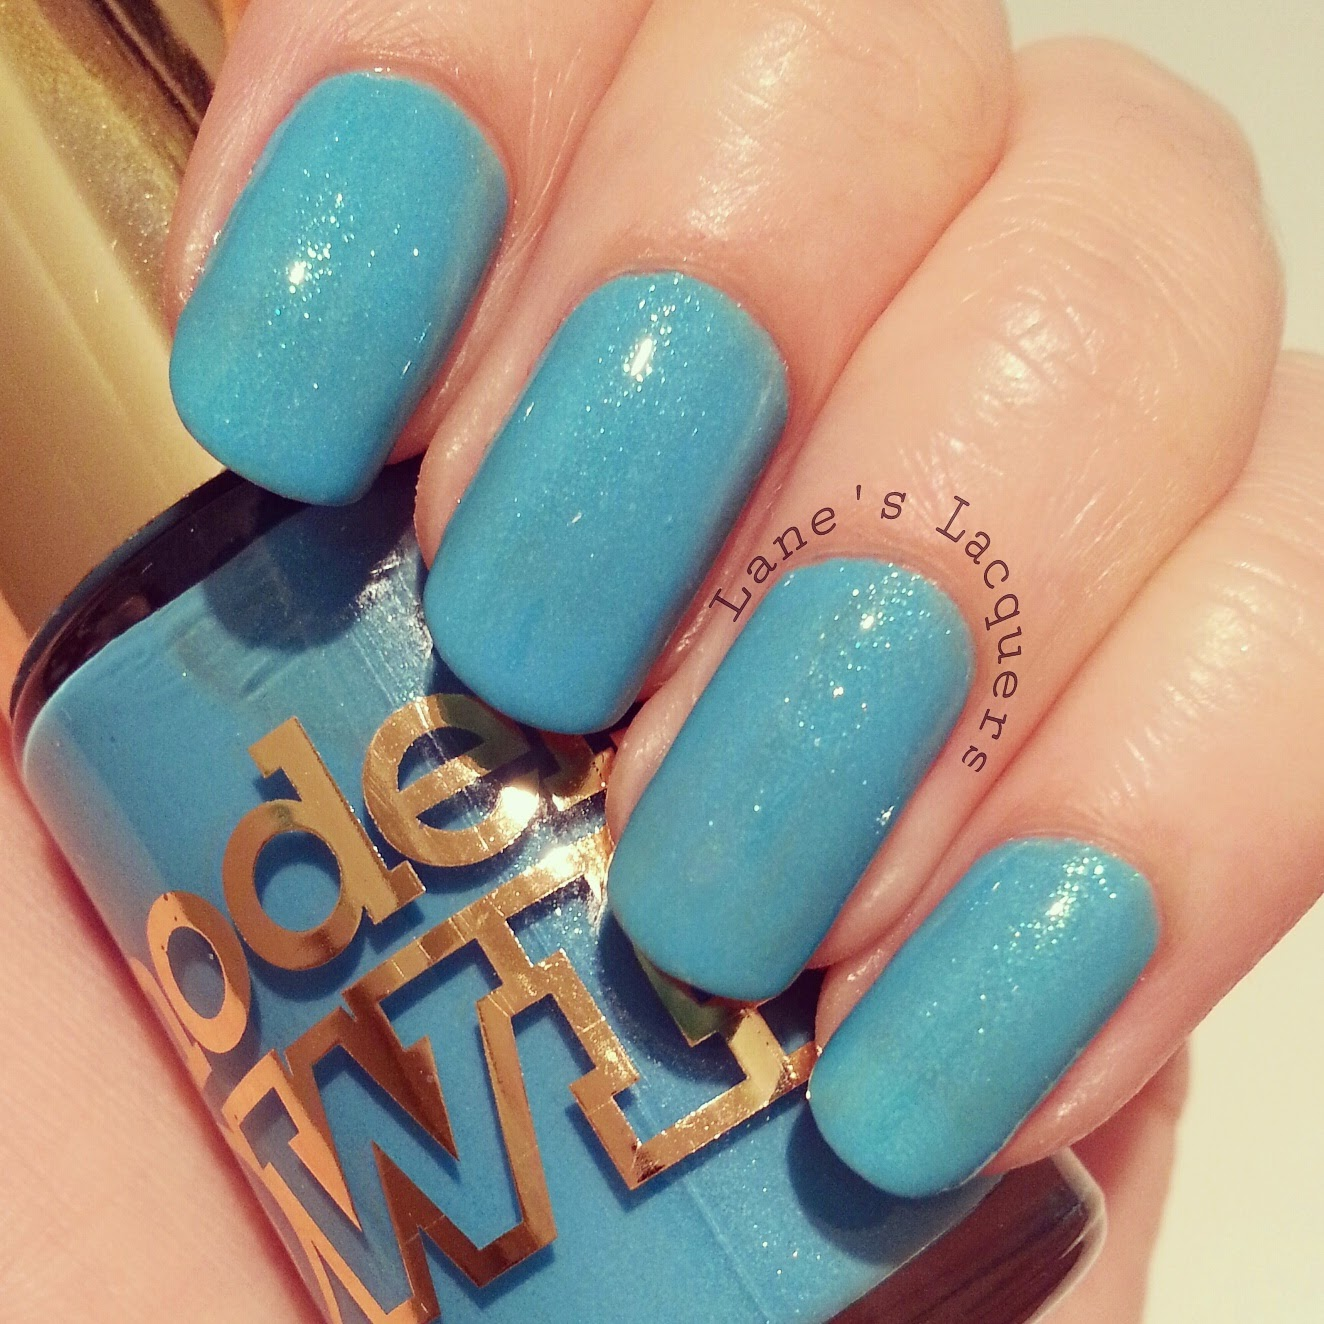 new-models-own-luxe-collection-asschure-blue-swatch-nails